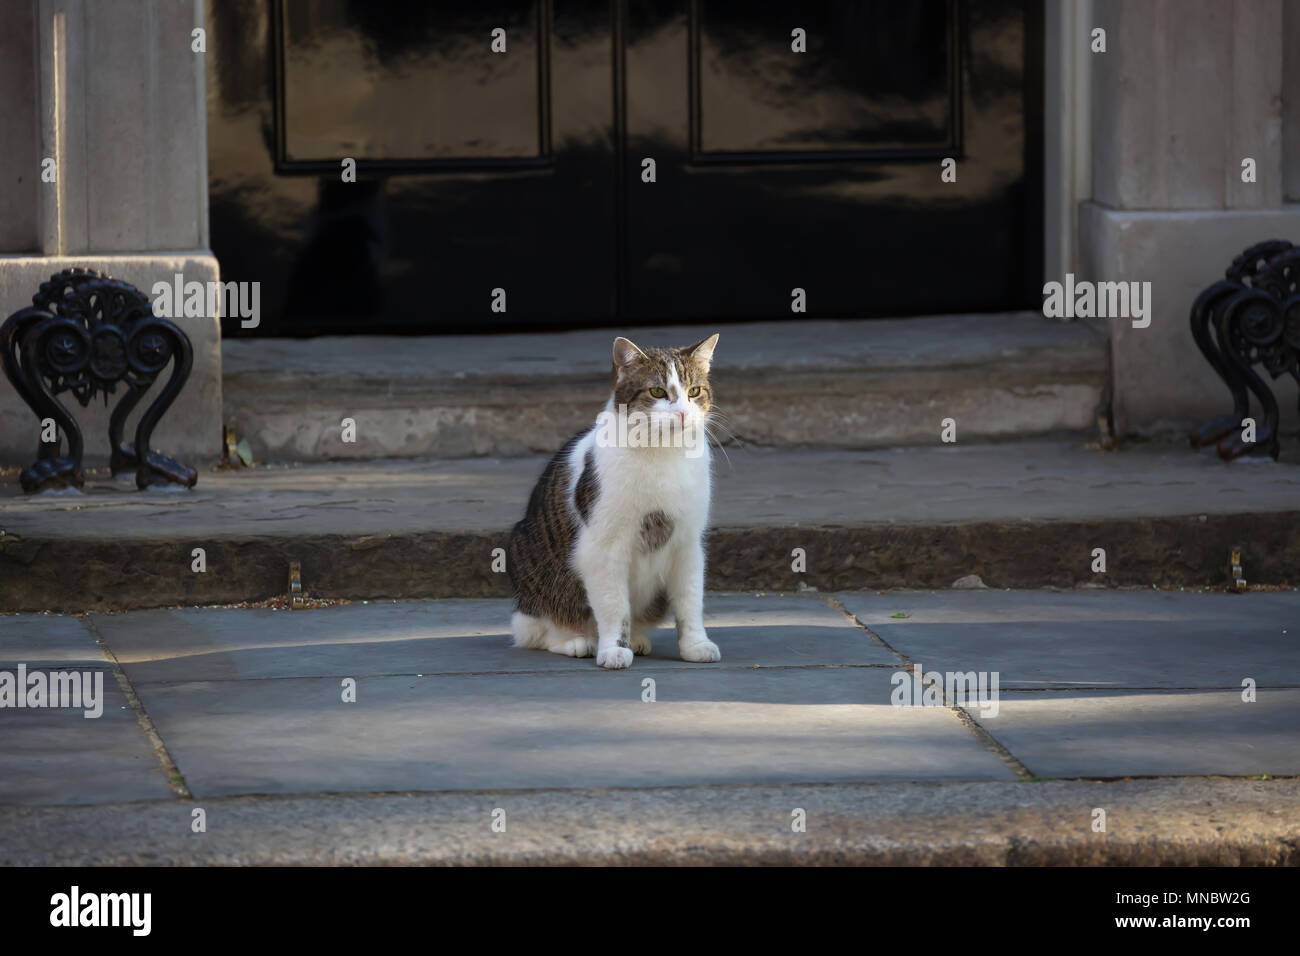 Larry the Cat outside 10 Downing Street in London©Keith Larby/Alamy Stock Photo